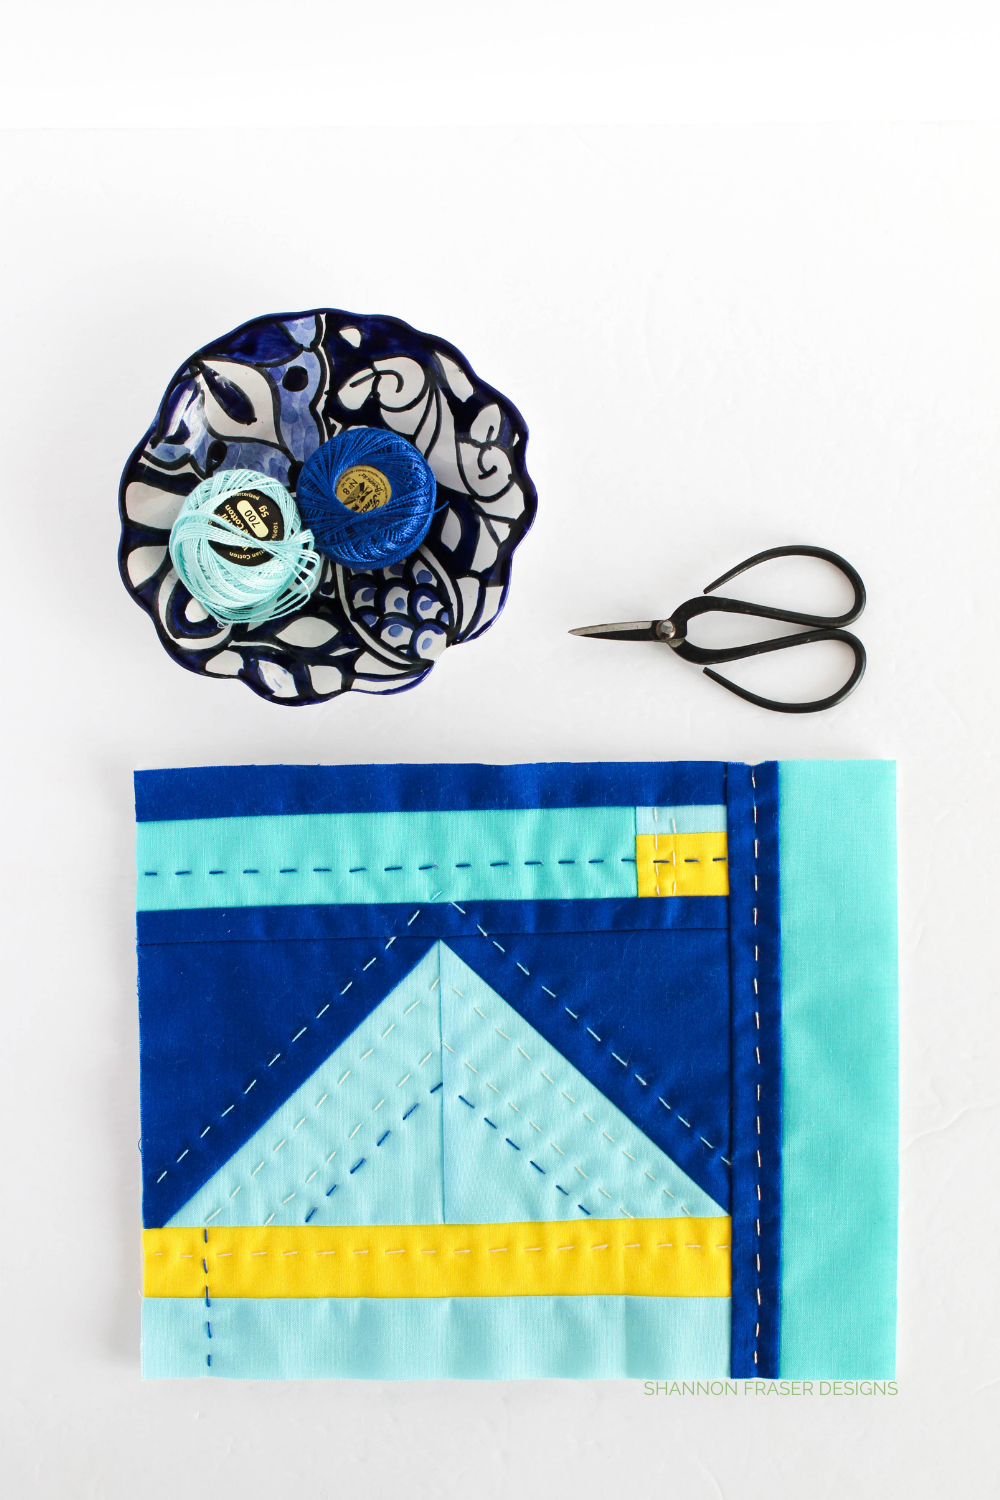 Modern mini improv quilt featuring shades of blue Kona Cotton with a pop of yellow. Hand quilted for added texture and dimension | Shannon Fraser Designs #artquilt #miniquilt